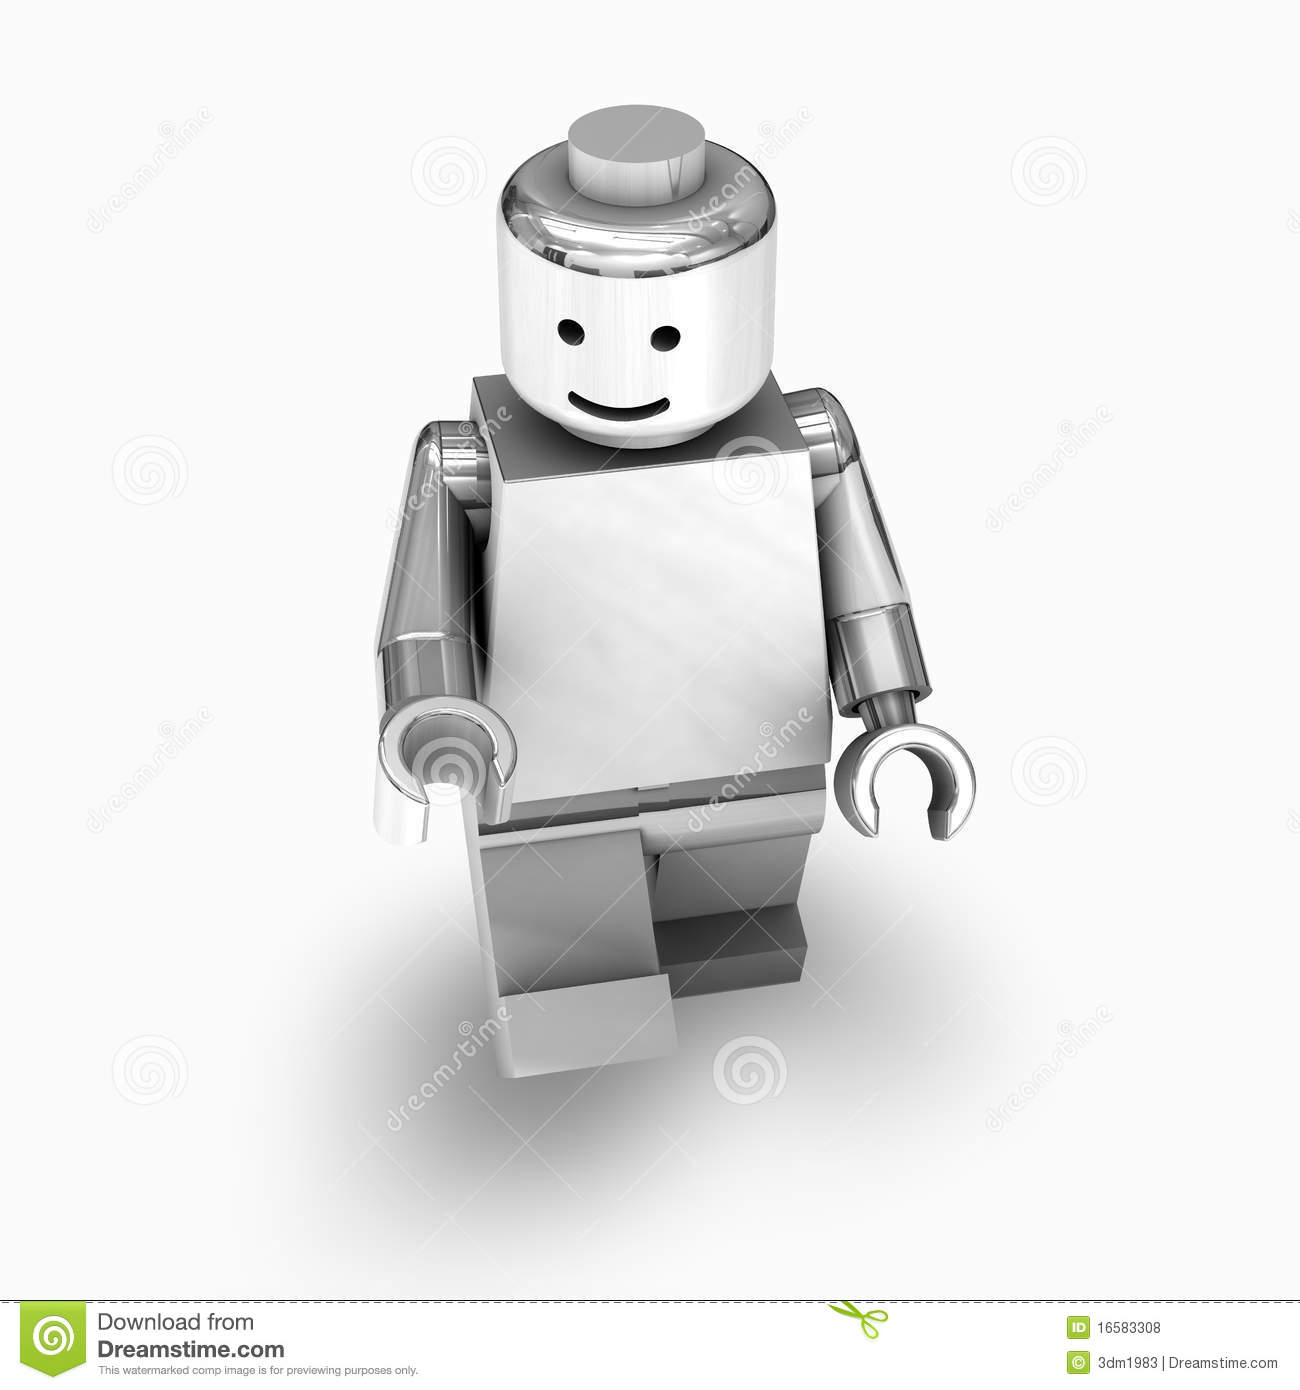 Chrome lego man editorial stock photo  Illustration of robotic     Chrome lego man